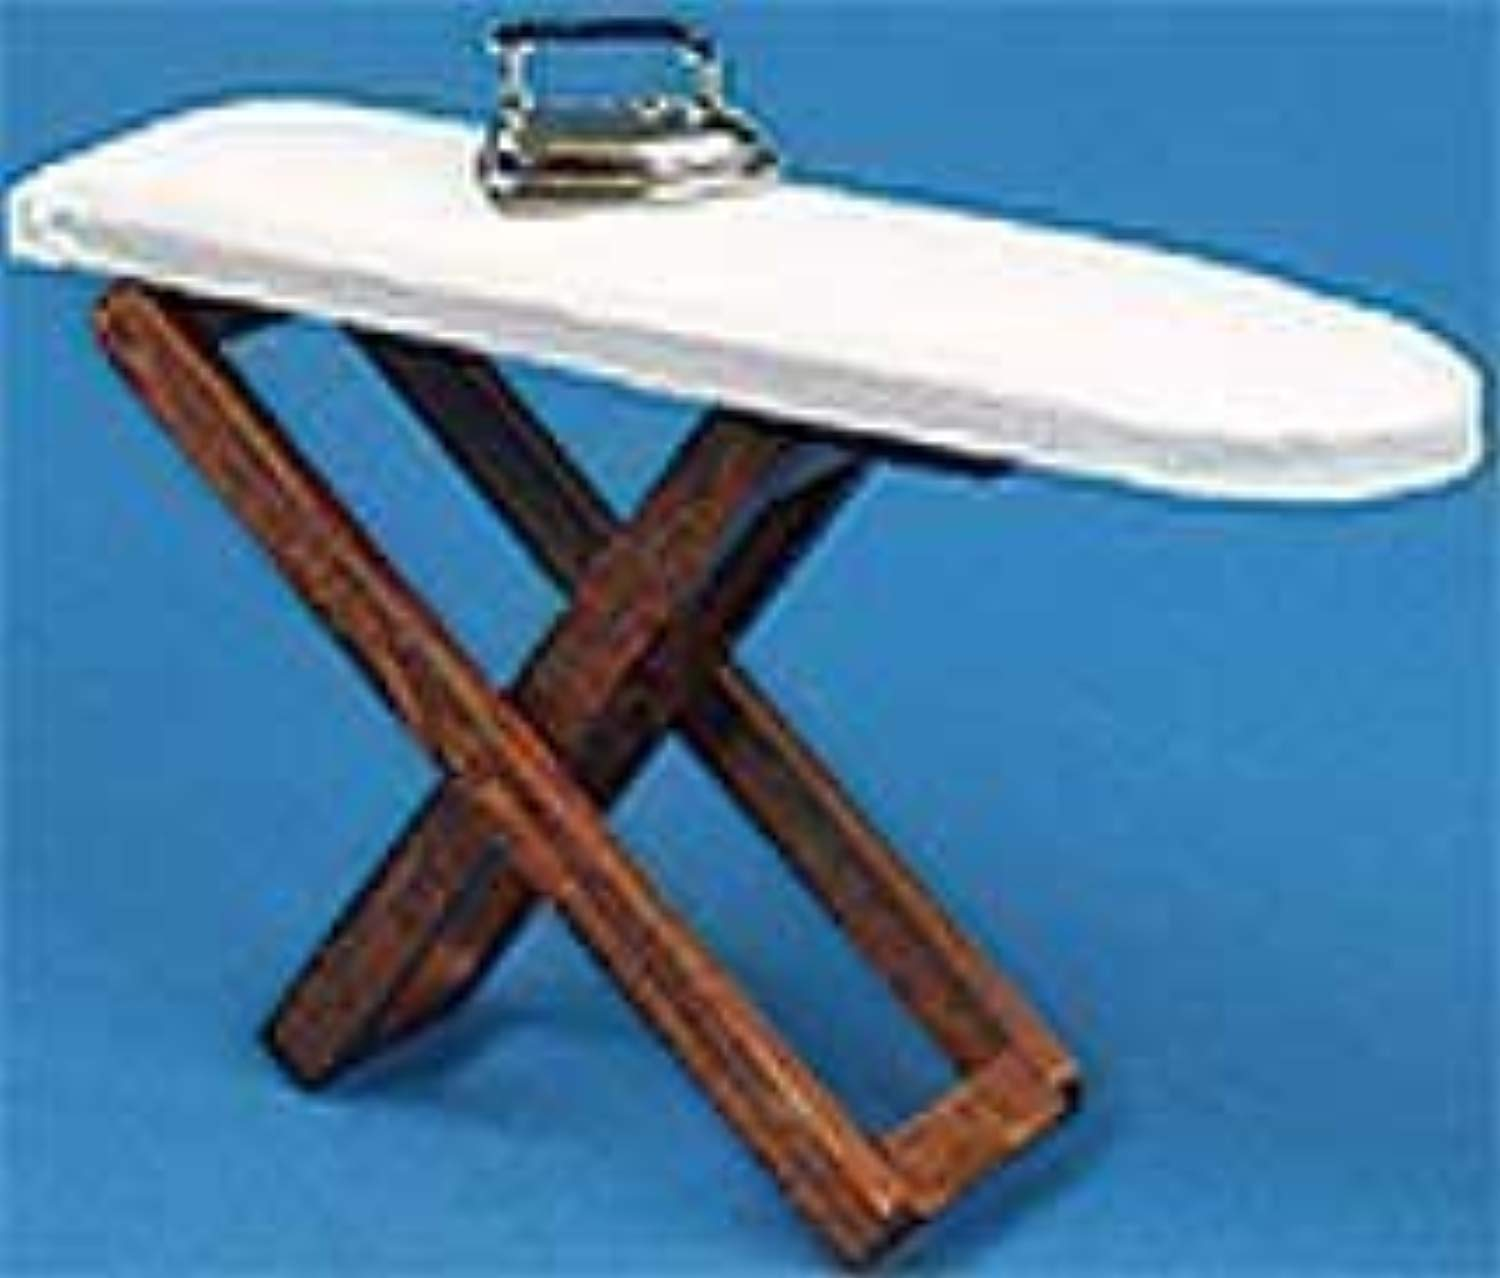 bambolas House Laundry Accessory Ironing tavola & Iron 304 by Town Square Miniatures